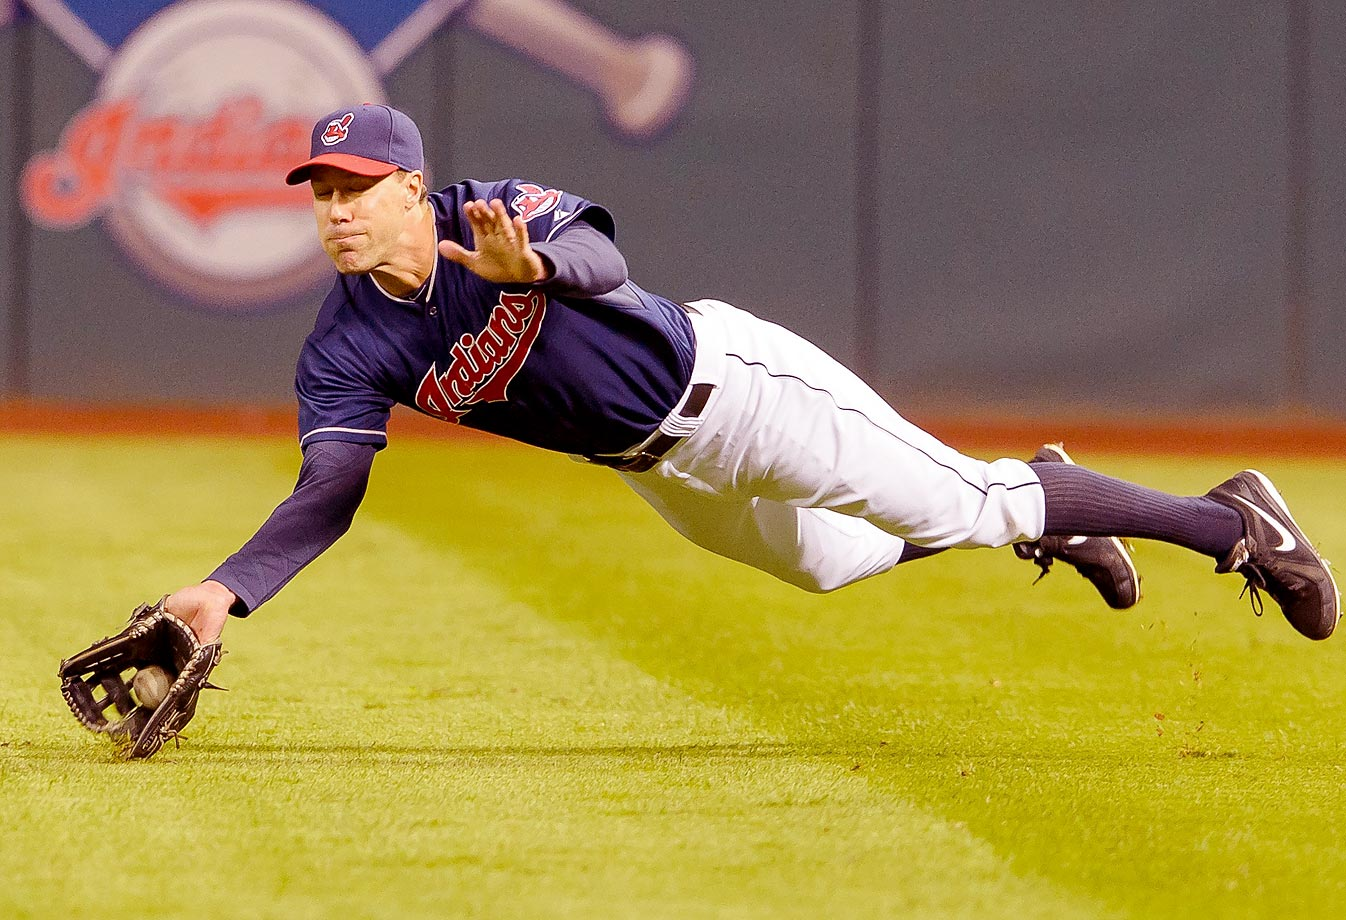 Cleveland Indians right fielder David Murphy makes a diving catch during the seventh inning against the Kansas City Royals. The Royals won the game 7-1.